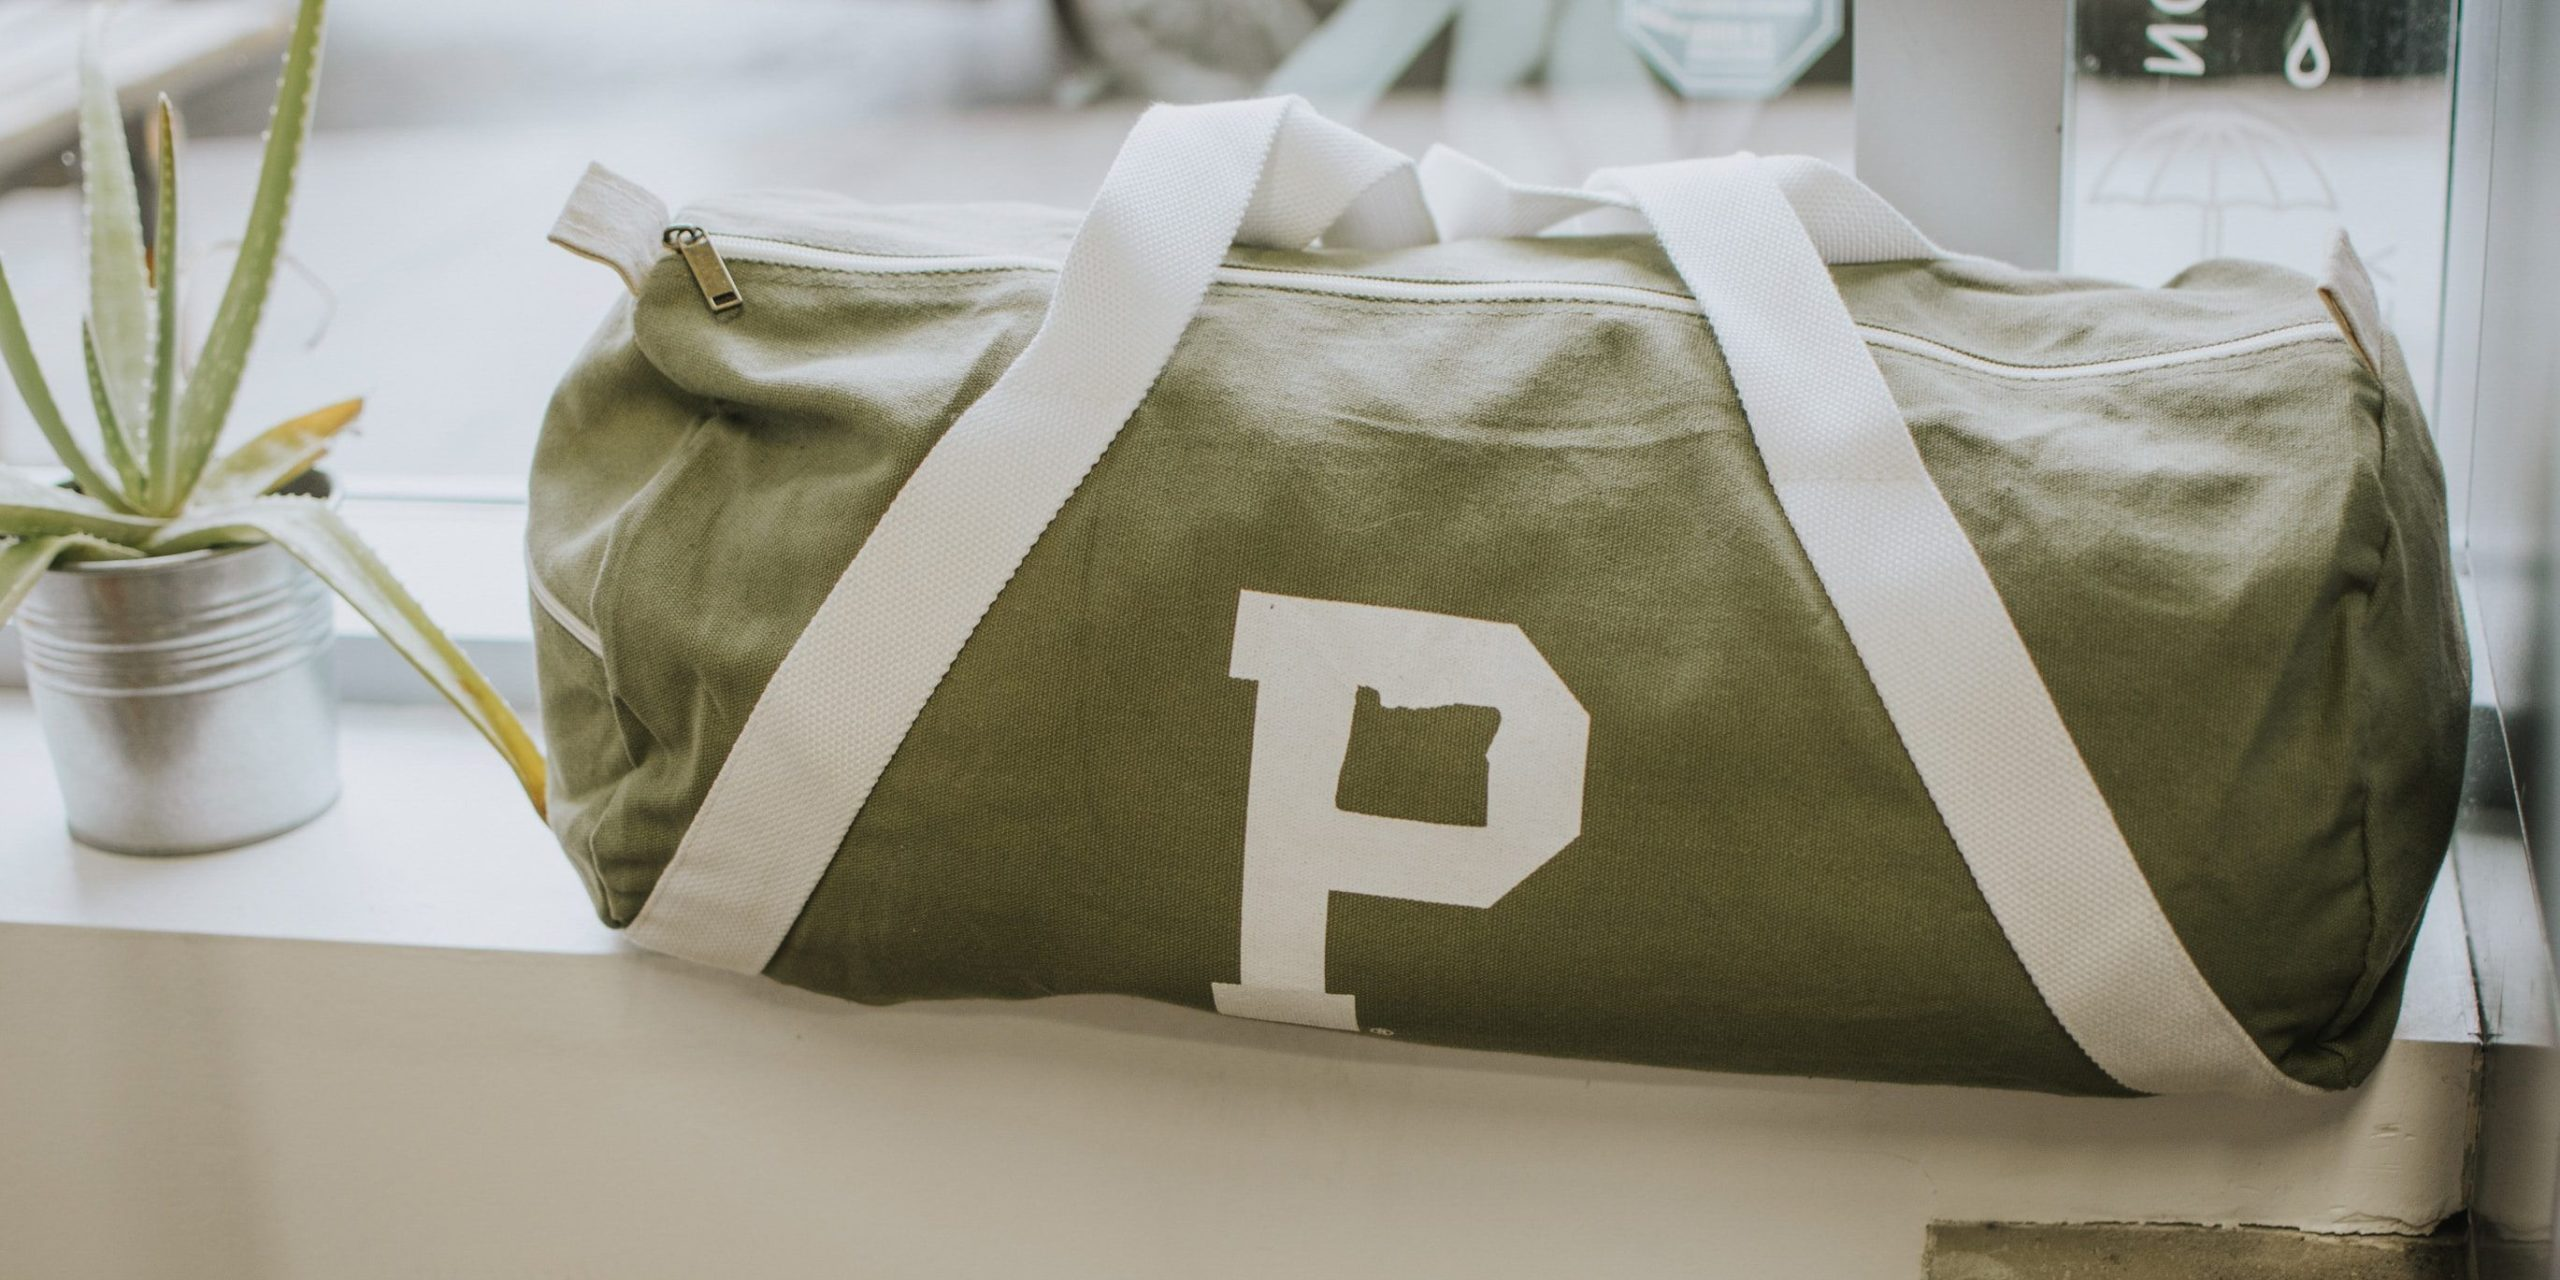 A view of a green canvas duffel bag next to an aloe plant